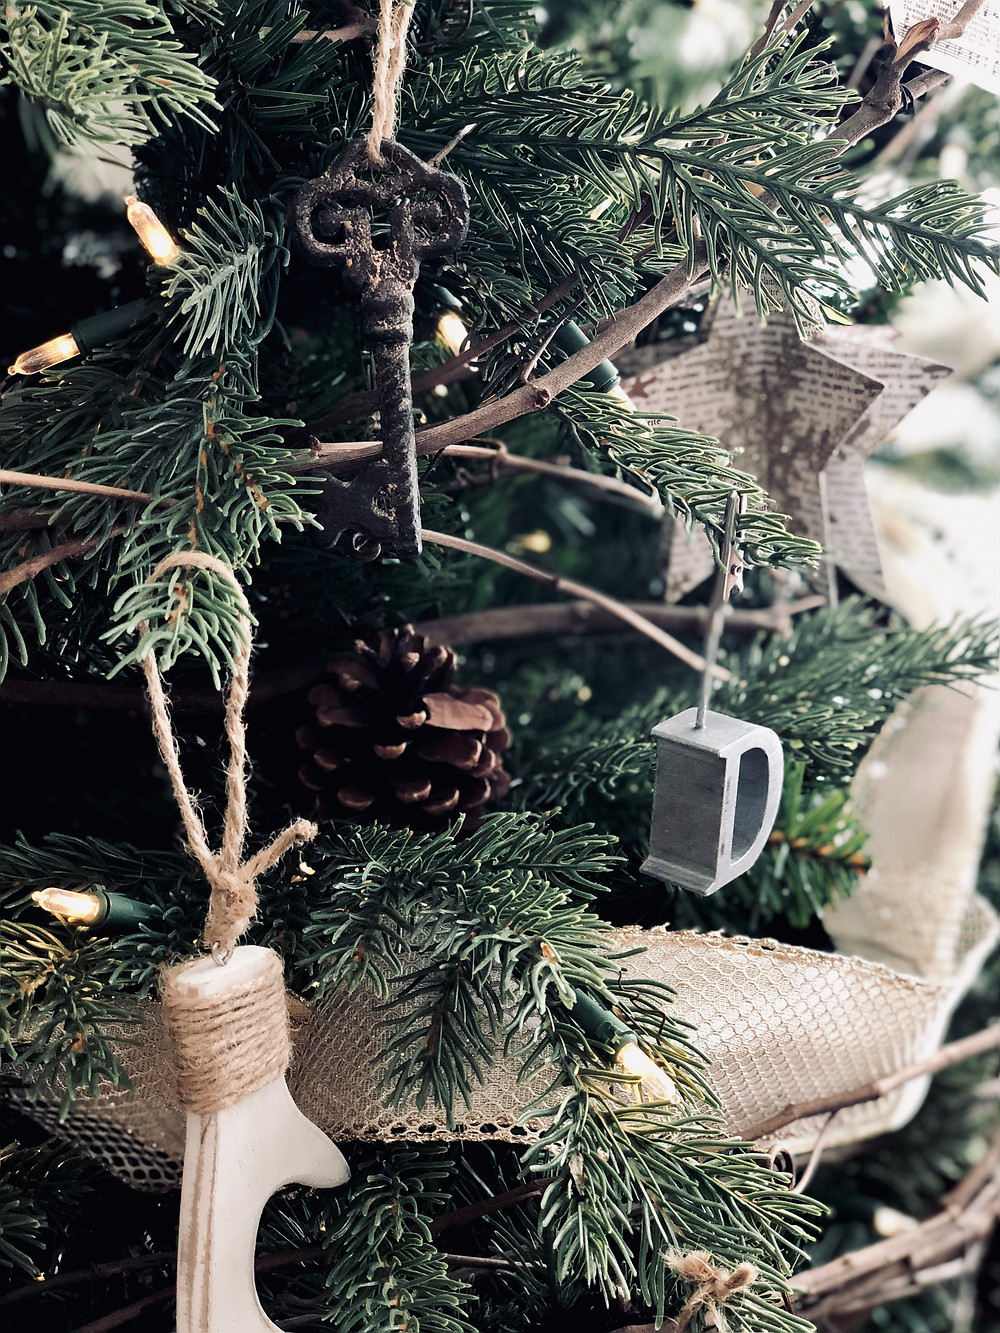 RUSTIC MODERN CHRISTMAS TREE INSPO. Love the idea of creating a Rustic Modern Christmas Tree? Or maybe thinking of creating something a little less traditional? Feathers, metals, woods and moss anything goes when mother nature is your muse. Check out LOVINGLYGRAY.com for inspo and tips.